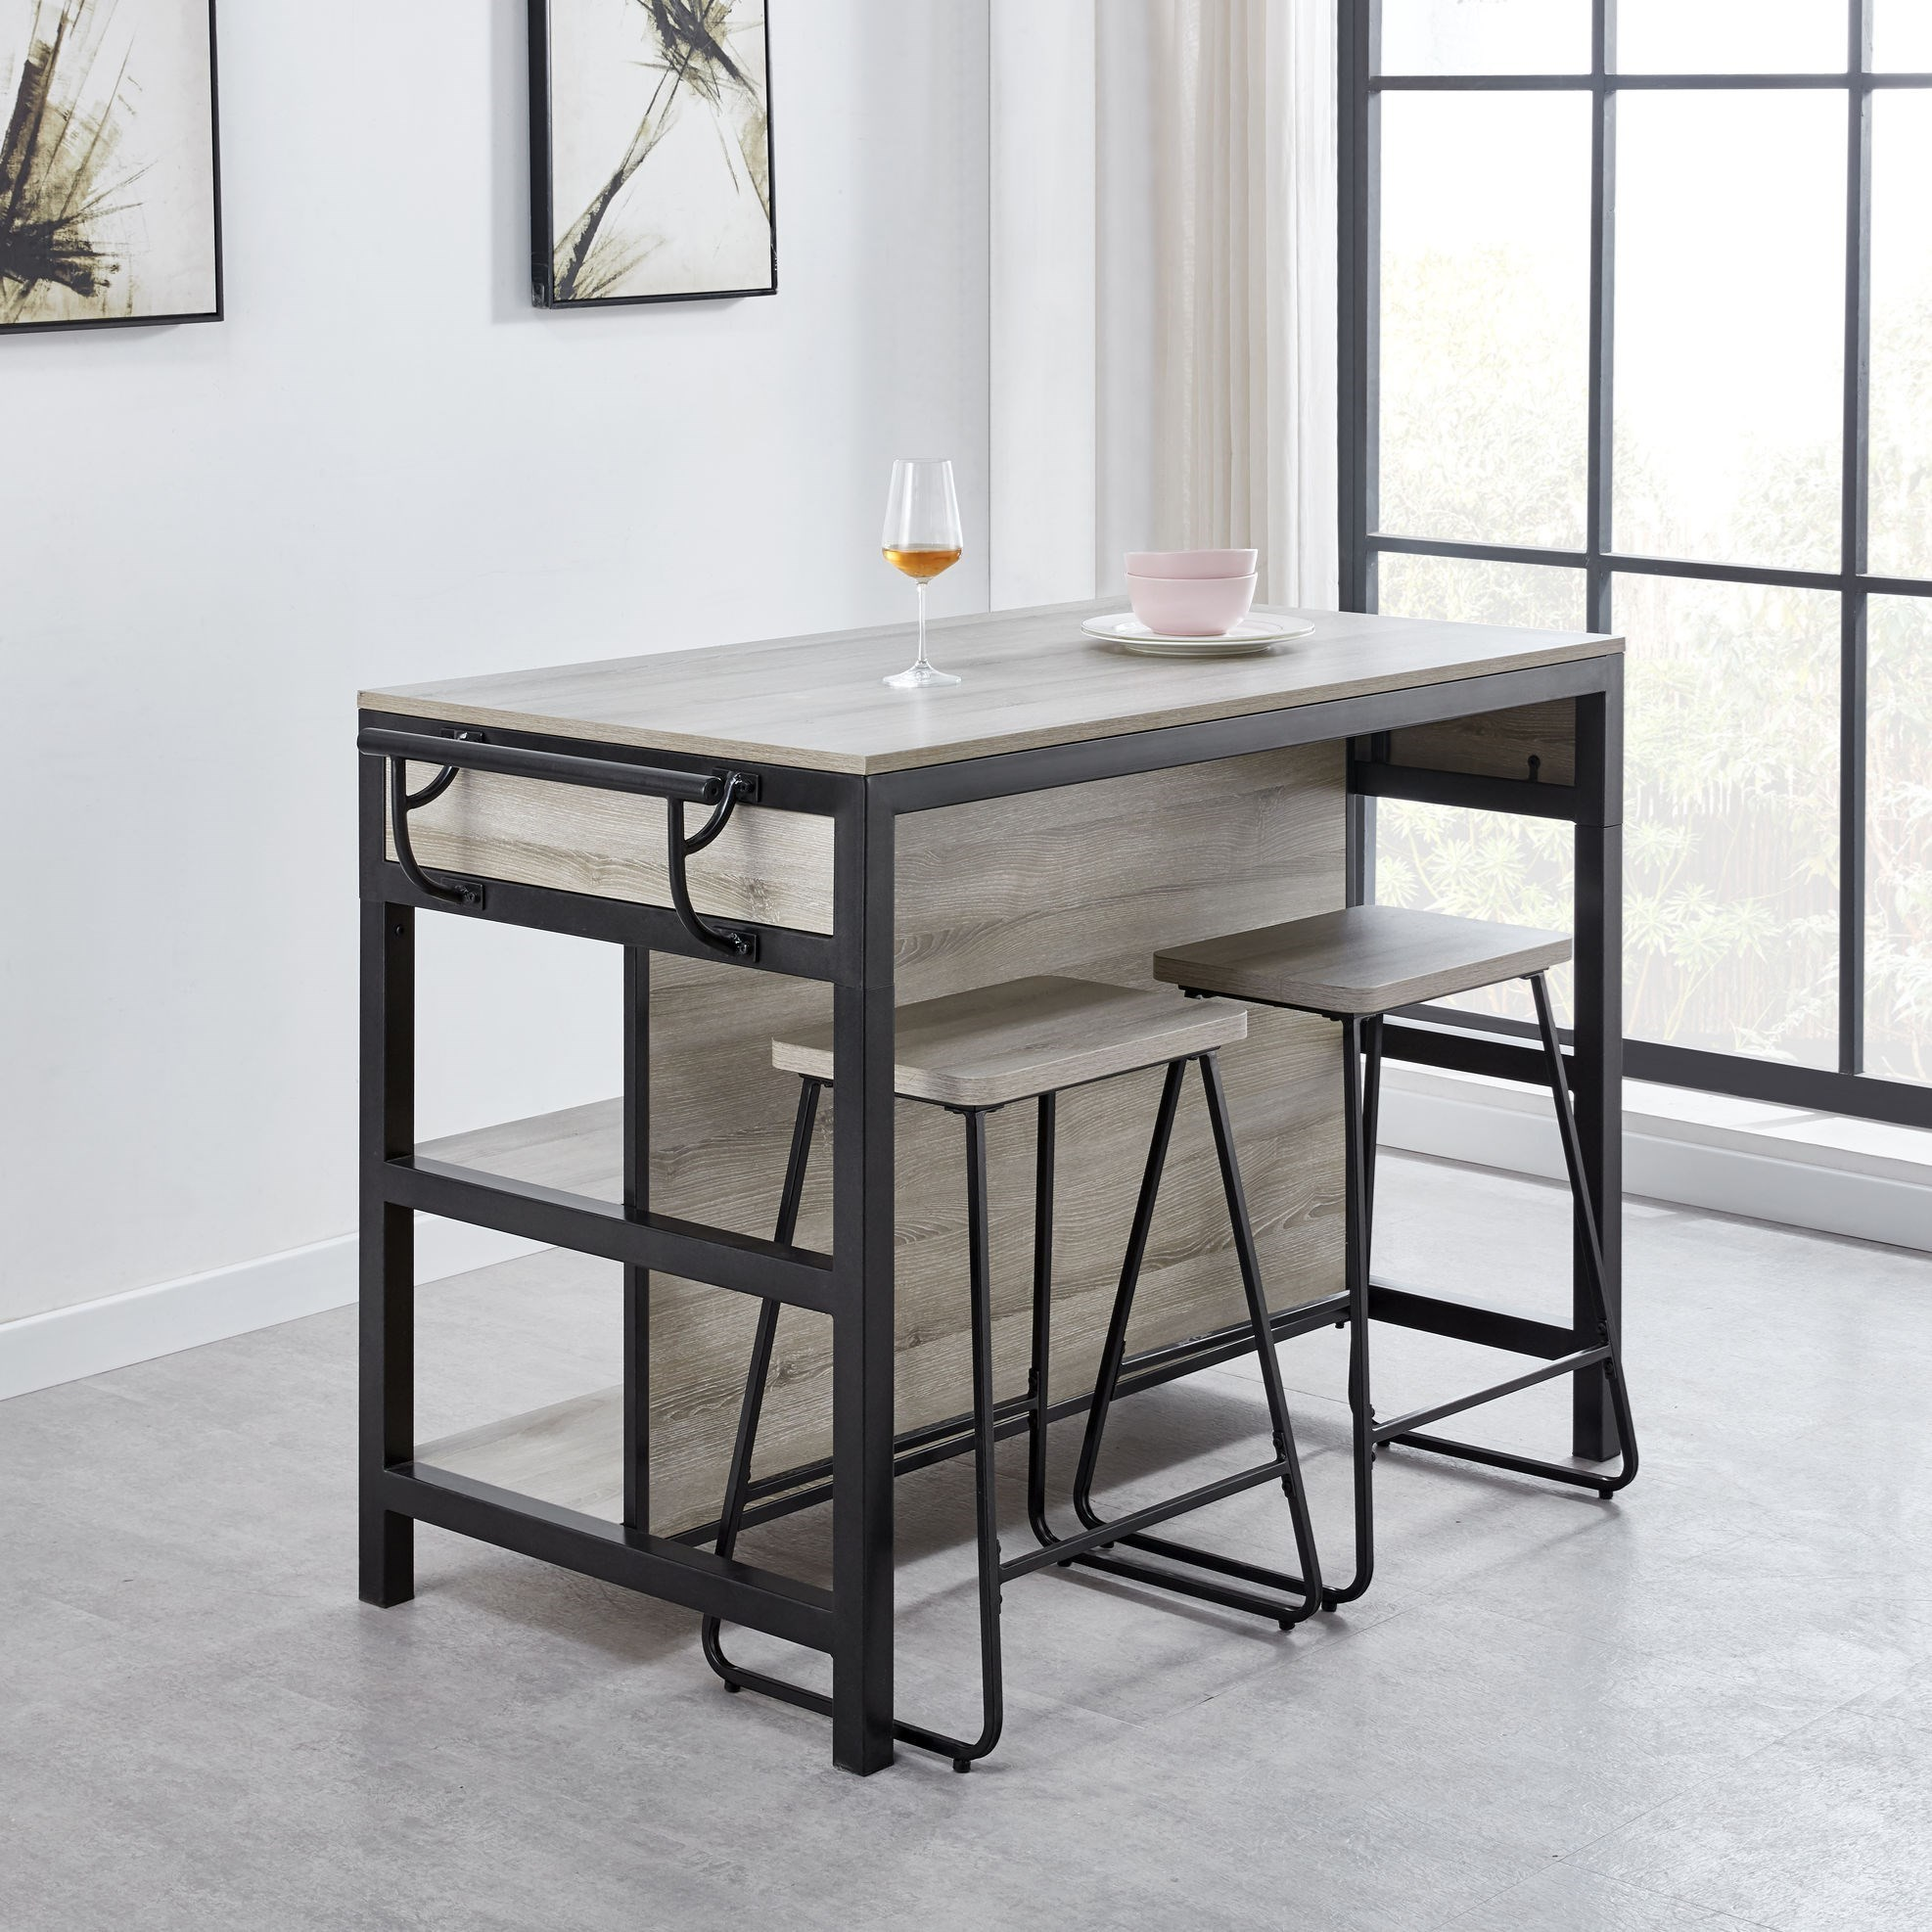 Carson 3-Piece Table and Chair Set by Steve Silver at Walker's Furniture